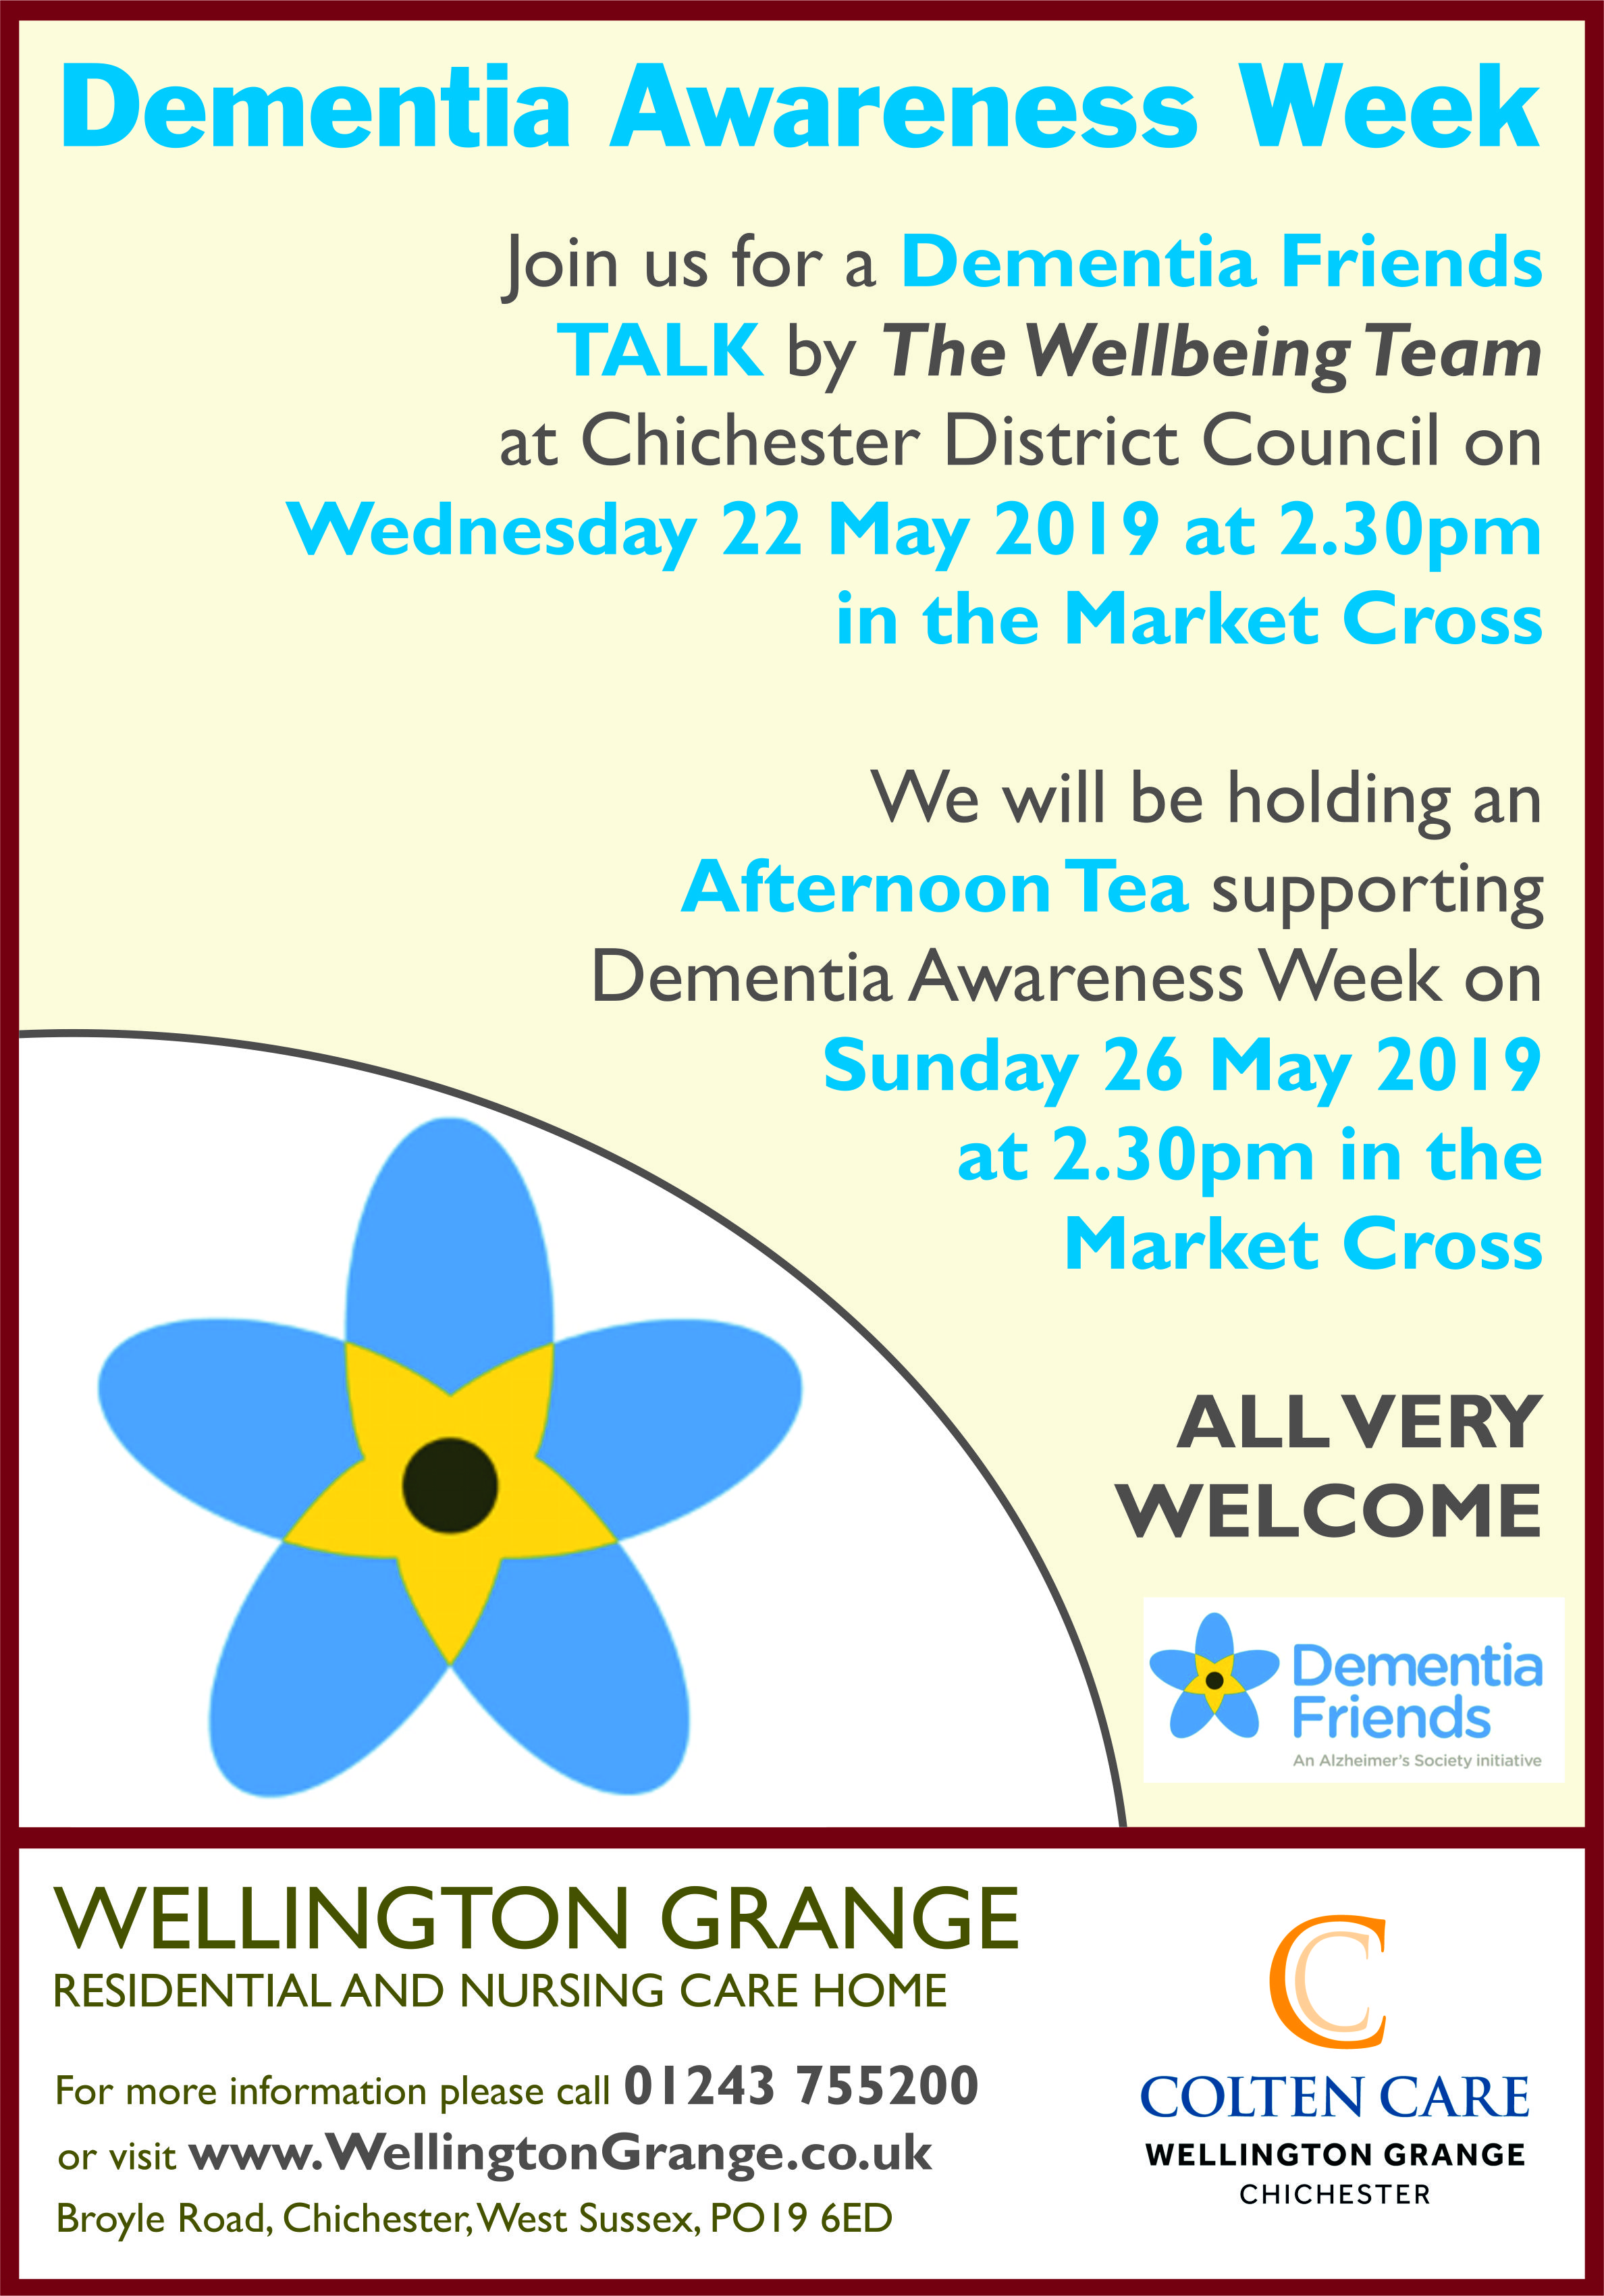 Wellington Grange - Dementia Awareness Week Poster 22 May - 16 Apr 2019